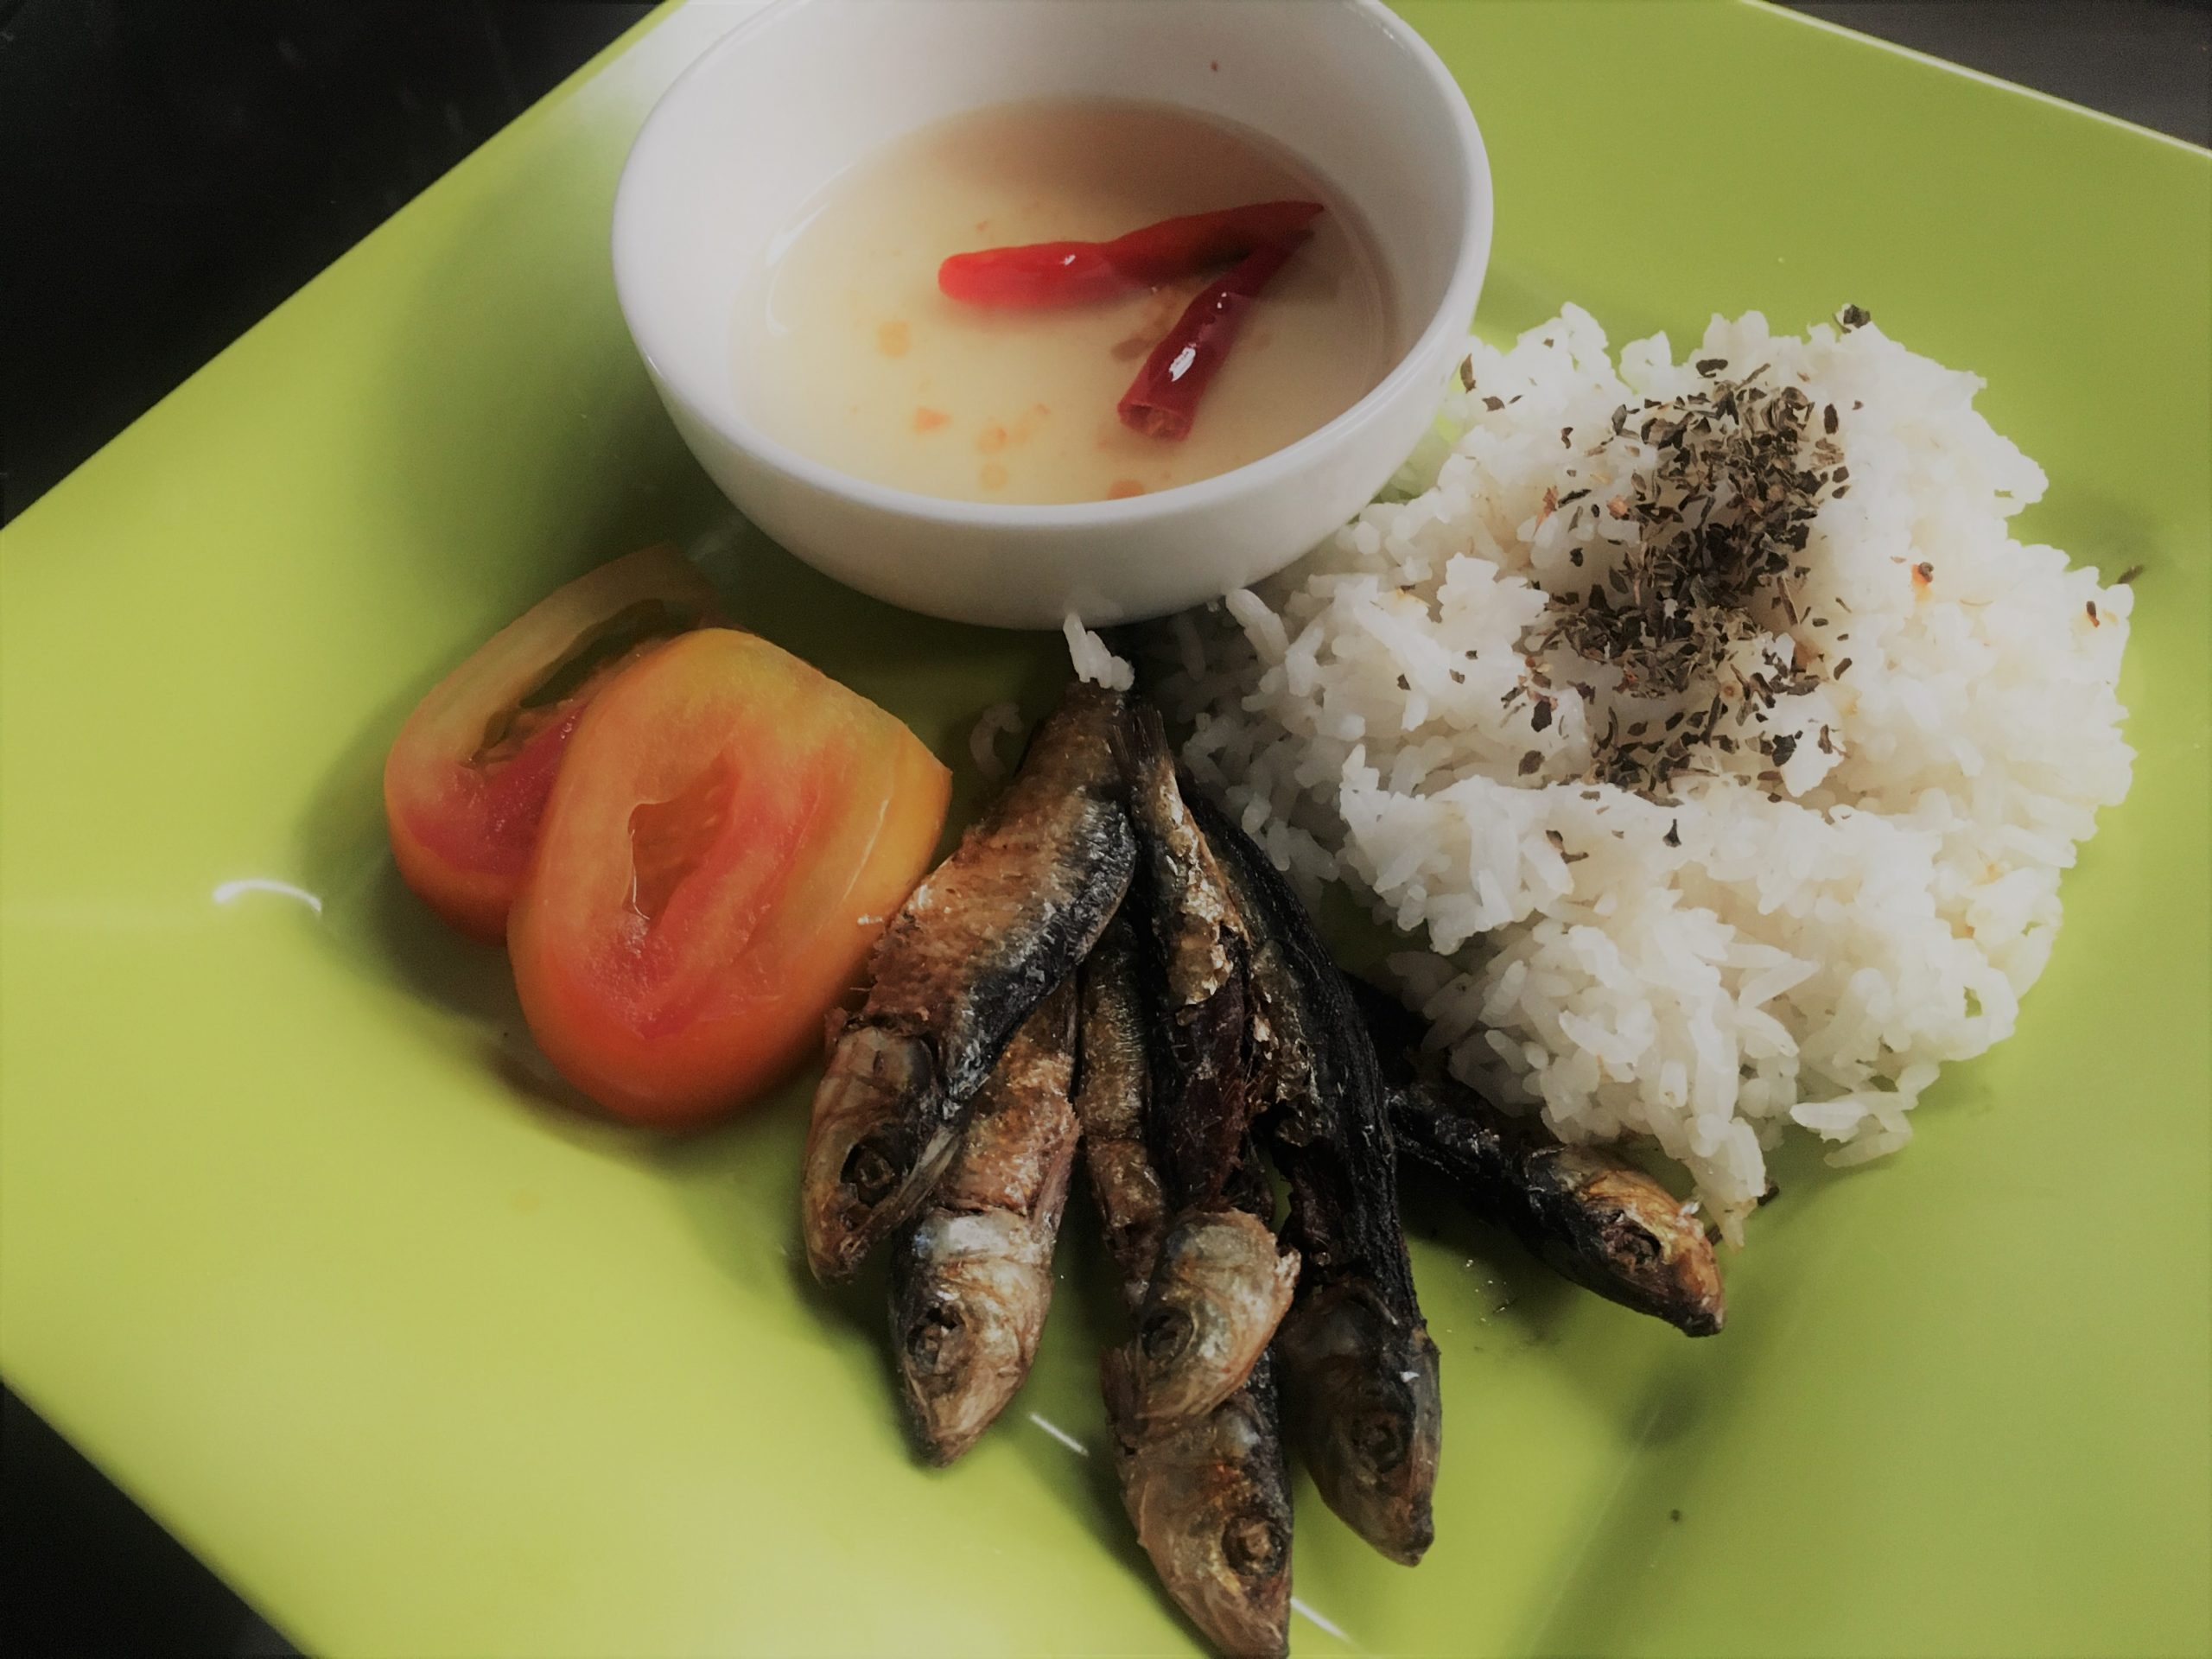 Pieces of dried fish with rice, slices of tomato, and vinegar with chili on a green plate.